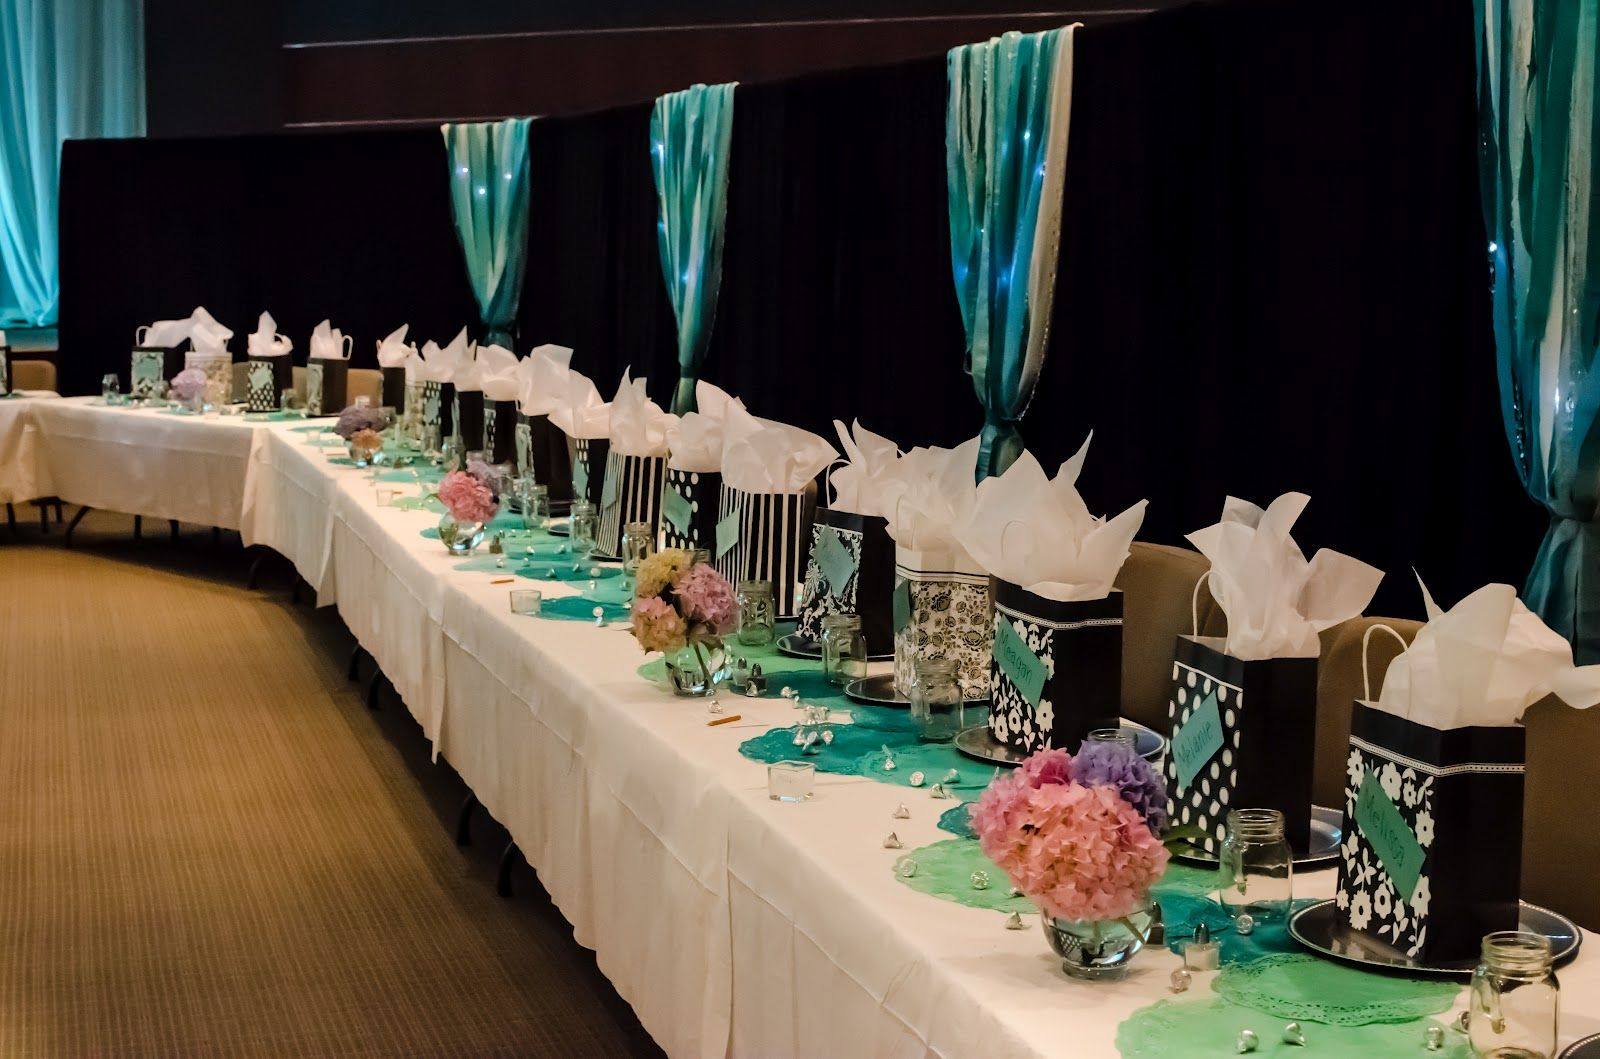 About decorating for a formal banquet your pastor